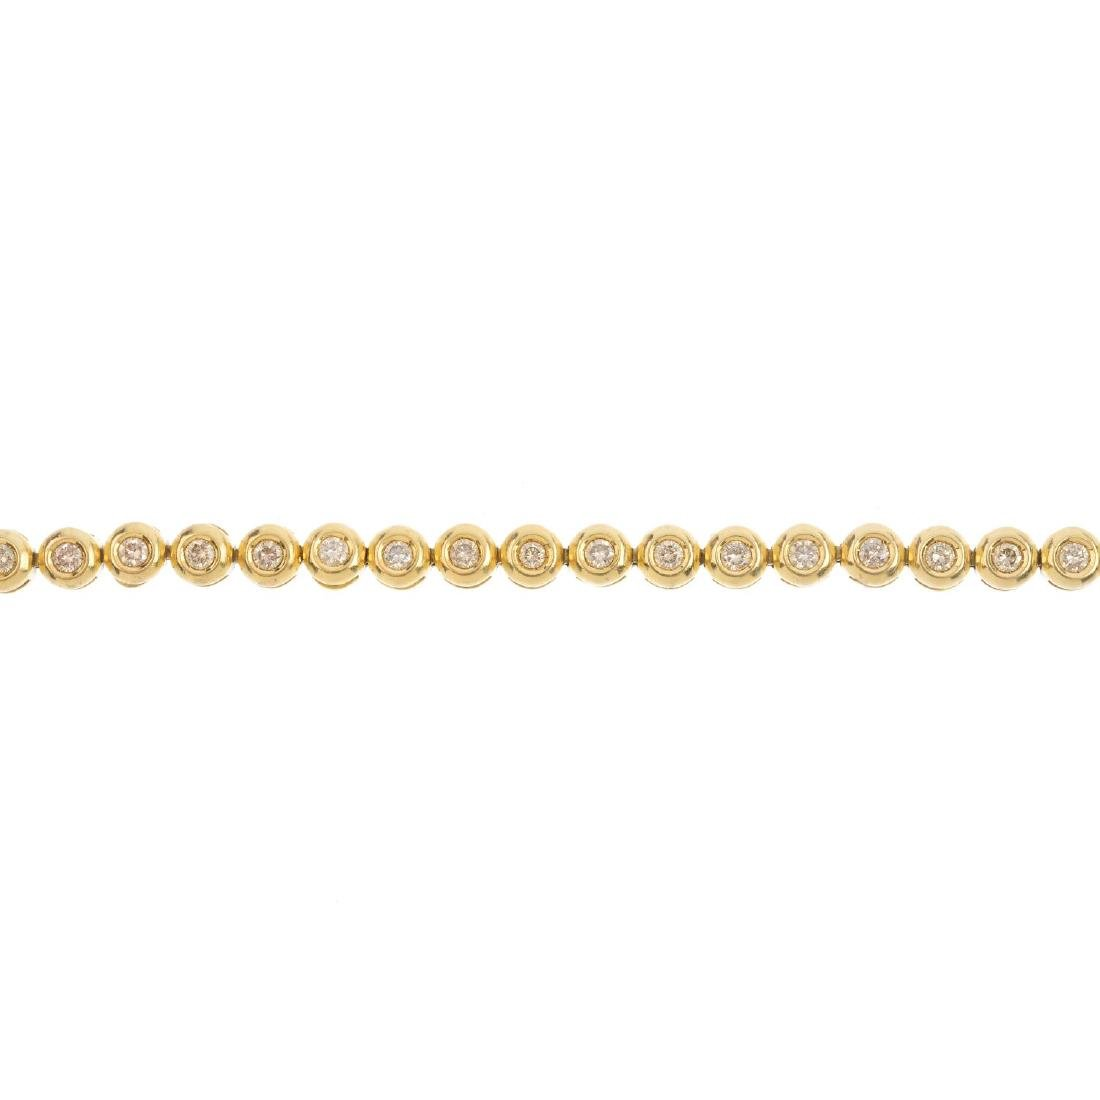 An 18ct gold diamond bracelet. Designed as a